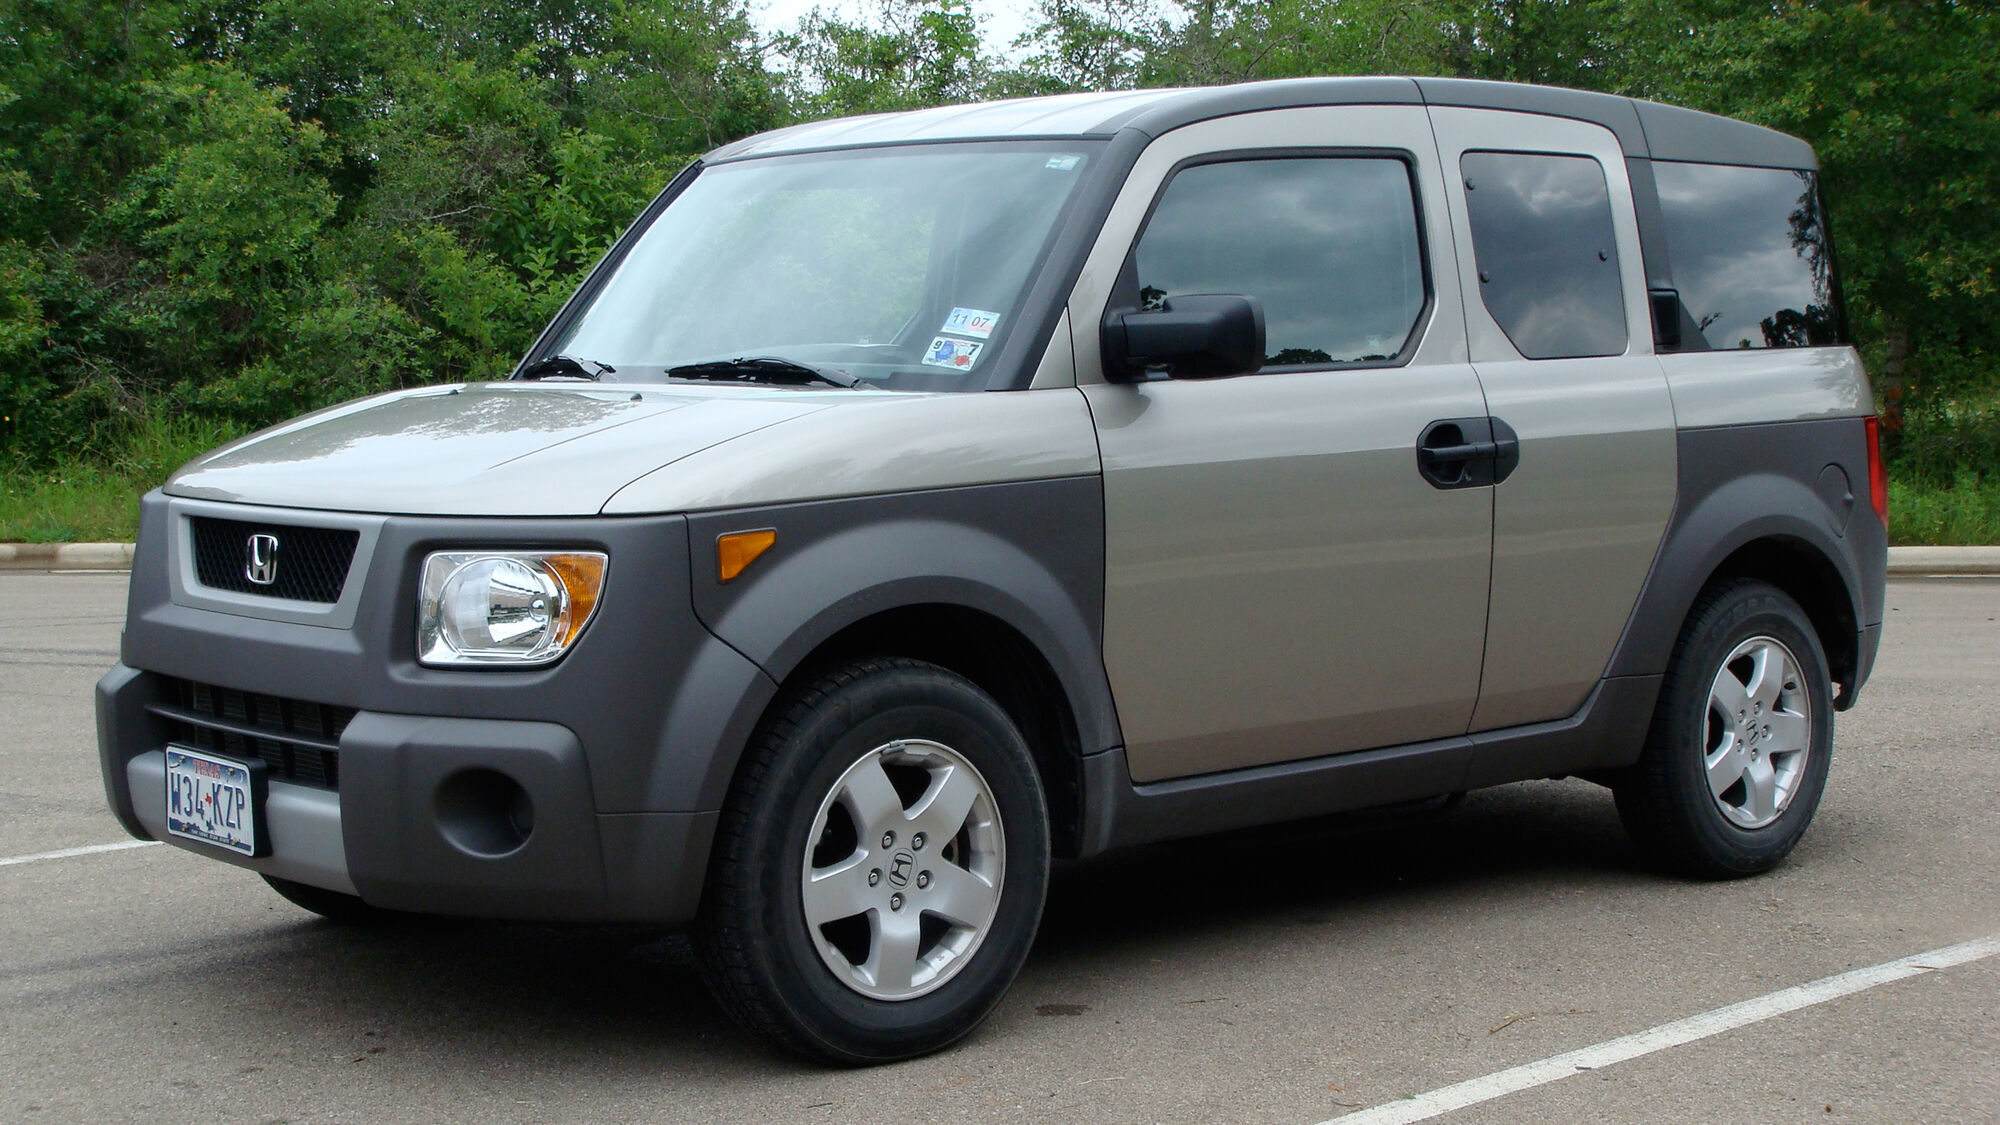 Honda Element | Tractor & Construction Plant Wiki | FANDOM powered by Wikia